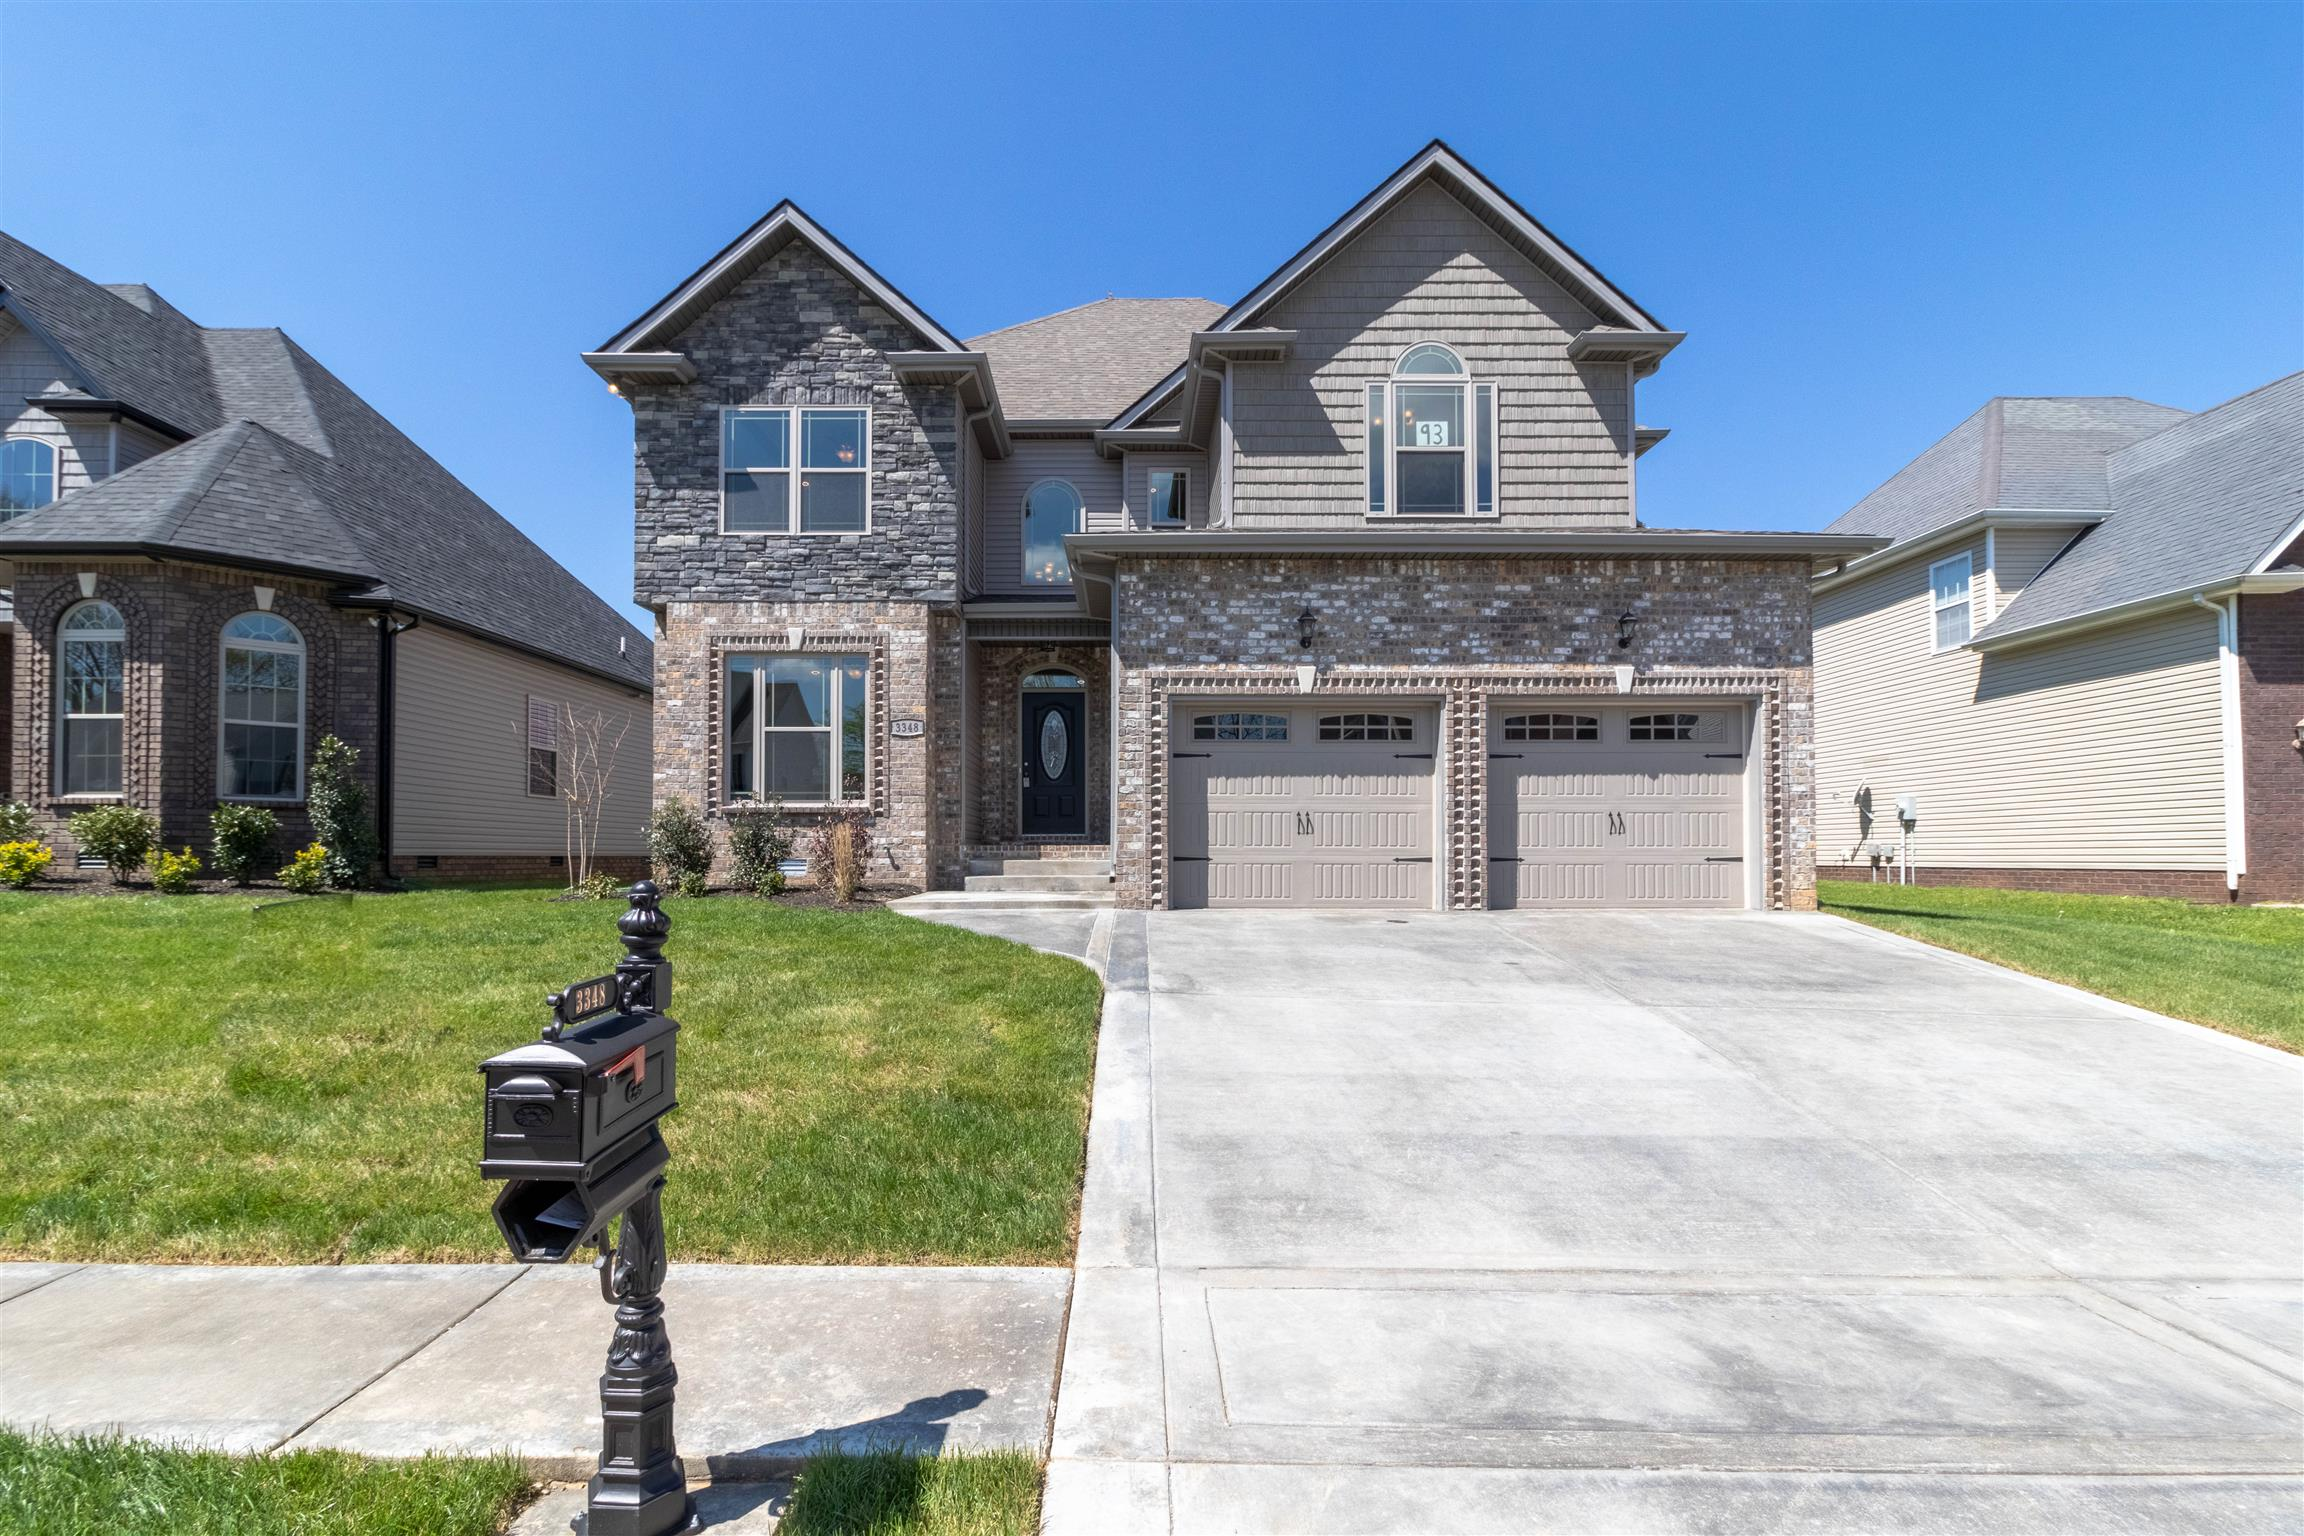 277 Timber Springs, Clarksville, TN 37042 - Clarksville, TN real estate listing